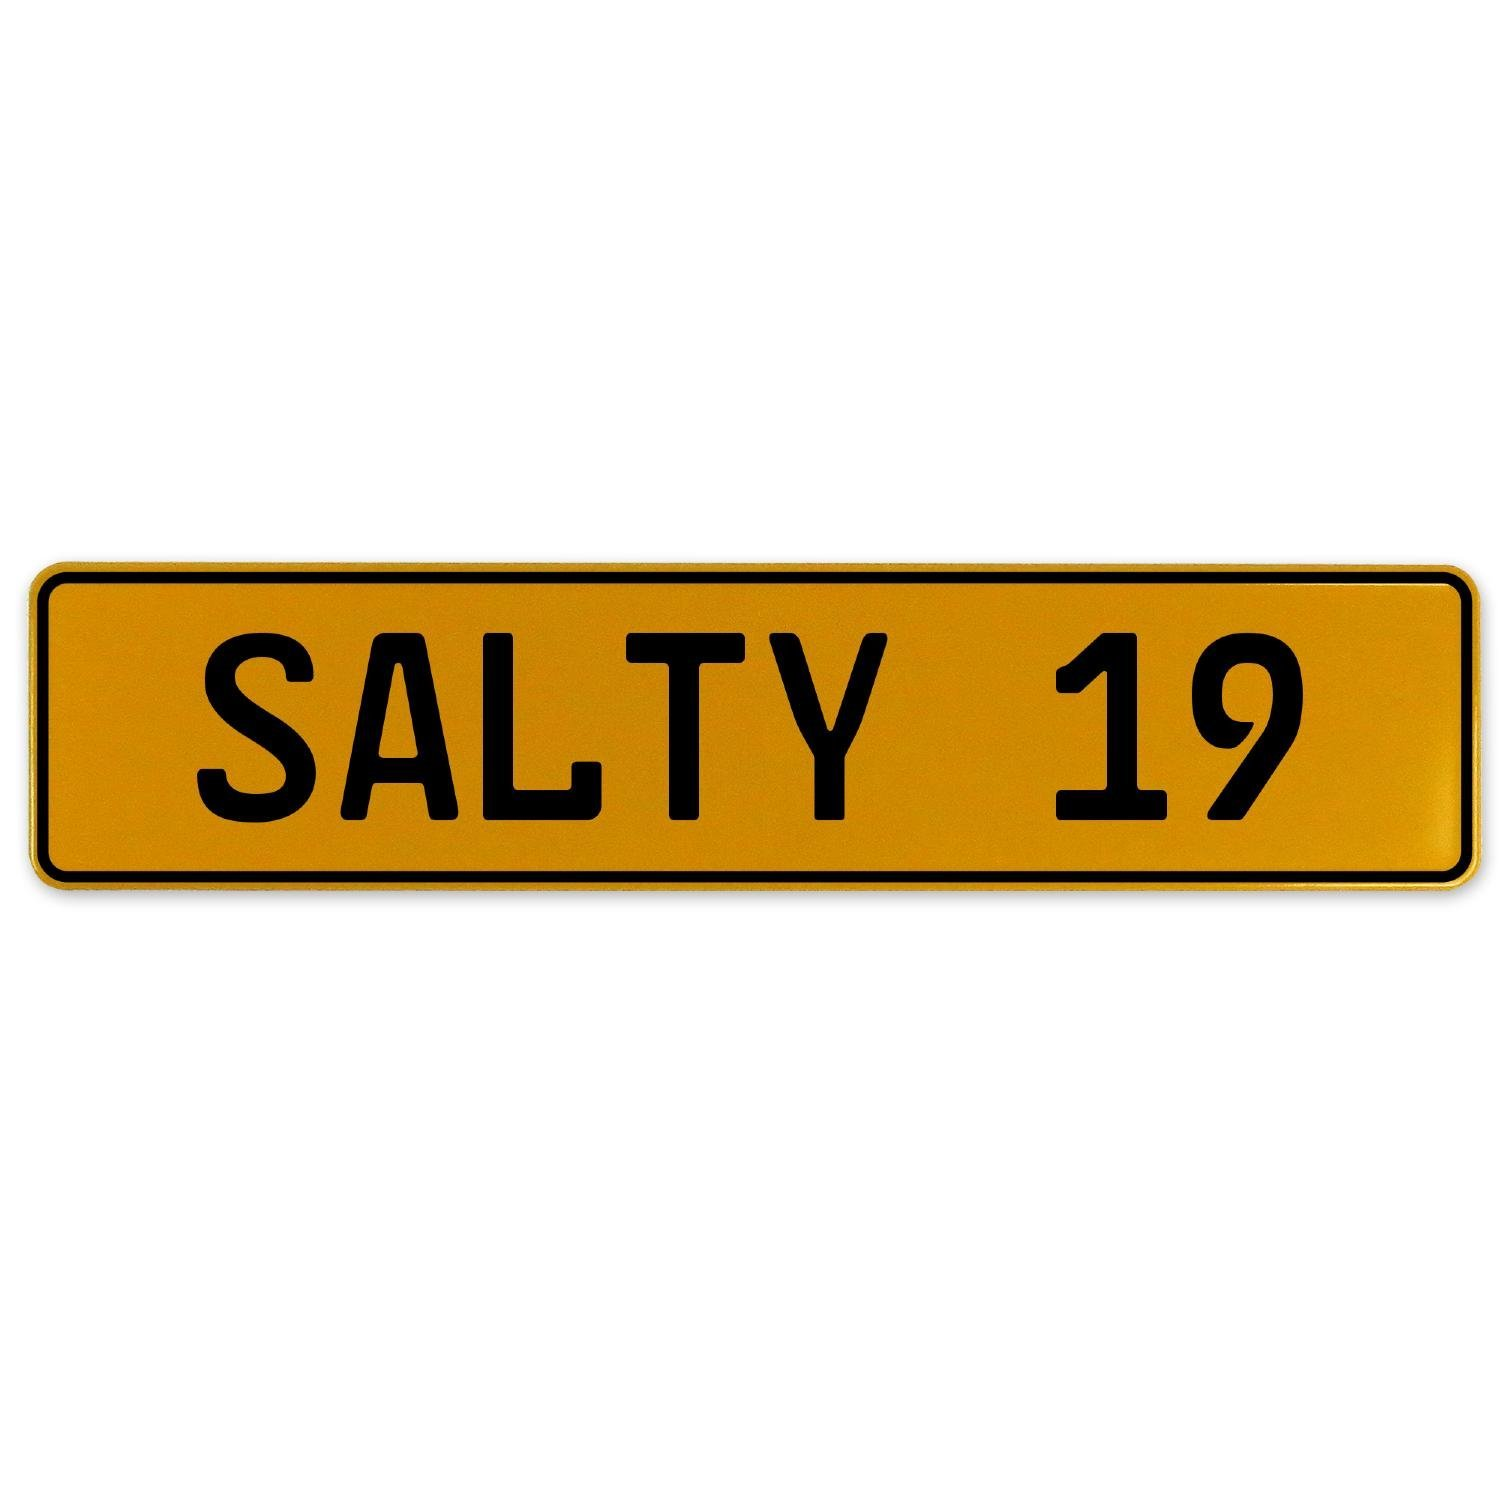 Vintage Parts 561745 Salty 19 Yellow Stamped Aluminum European Plate